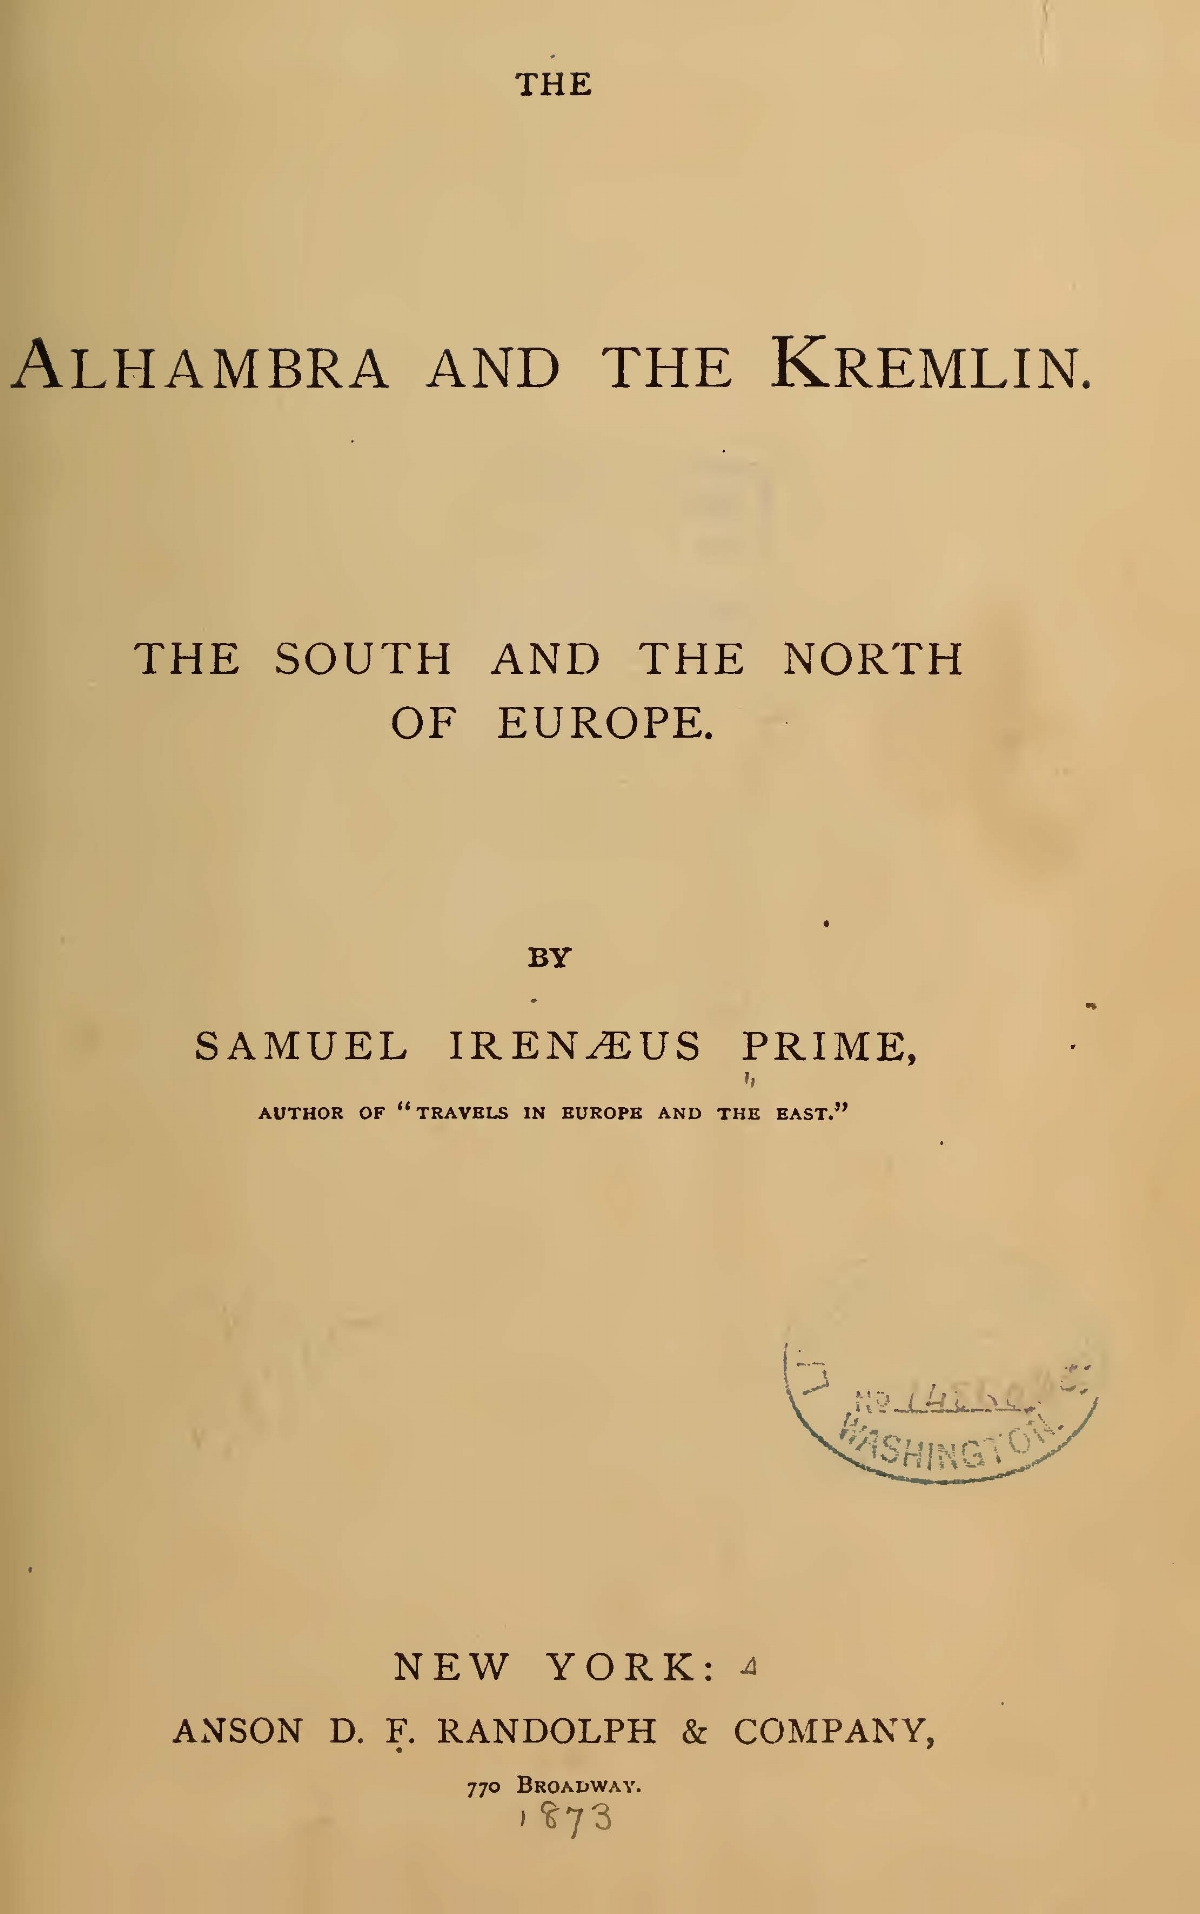 Prime, Samuel Irenaeus, The Alhambra and the Kremlin Title Page.jpg